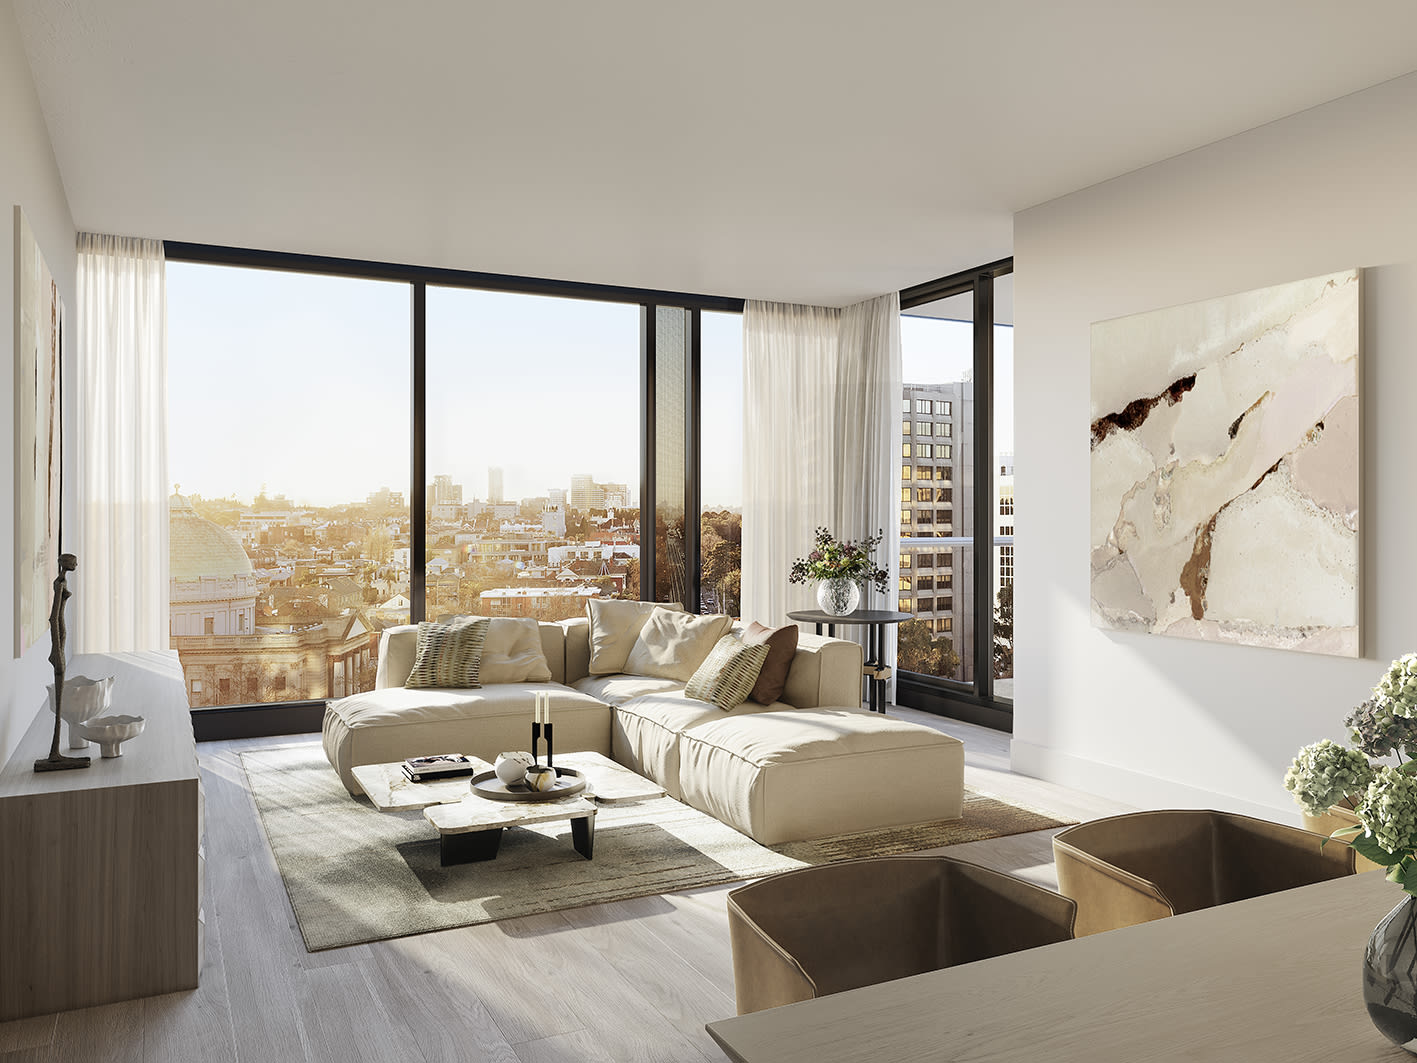 Marriott Executive Apartments set for Australian launch in Melbourne